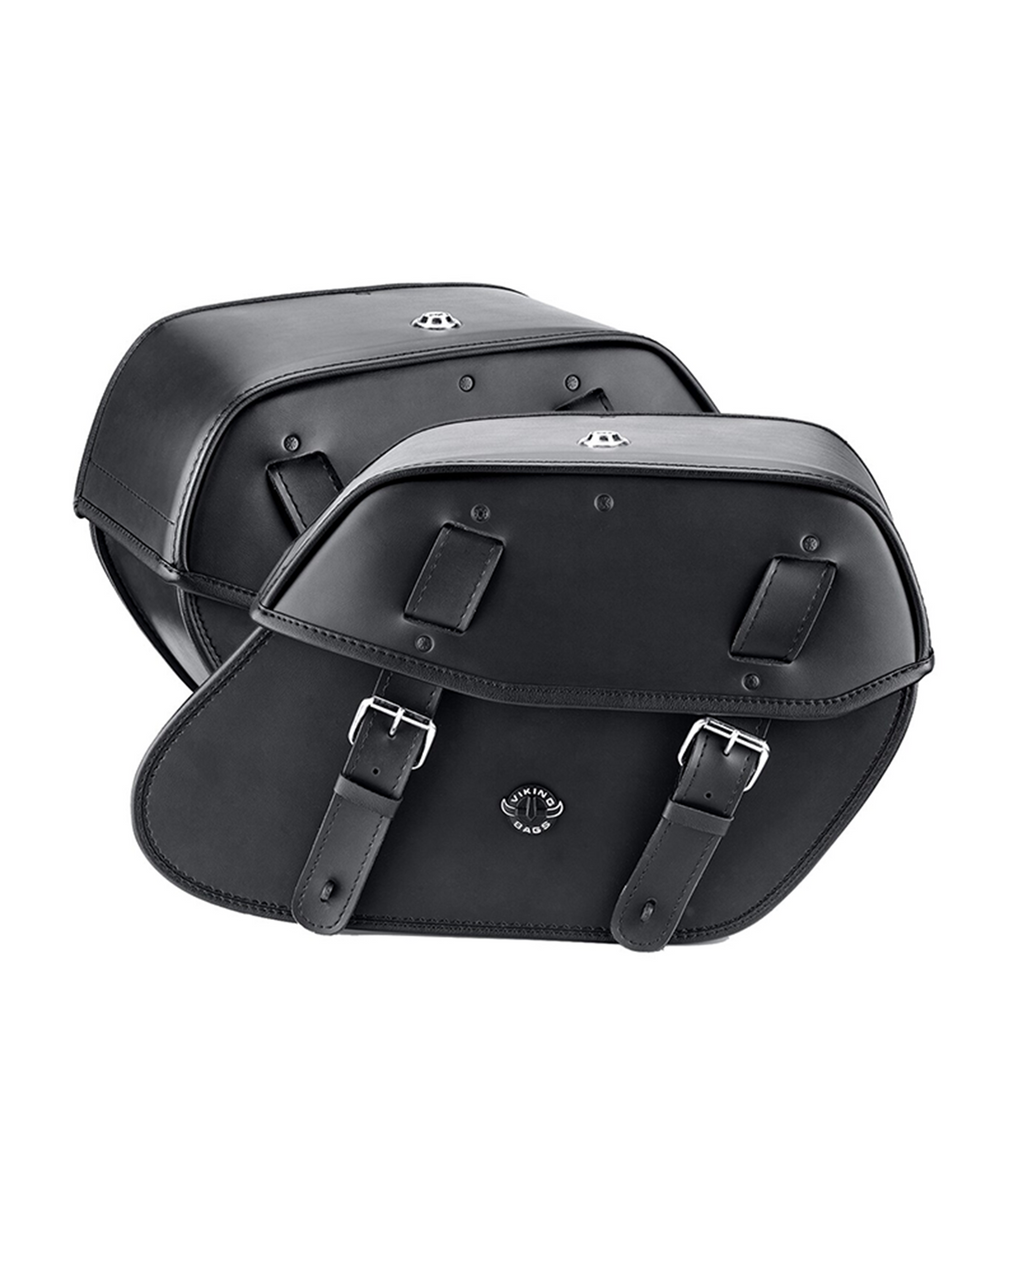 Viking Odin Large Motorcycle Saddlebags For Harley Softail Standard FXST Both Bags View